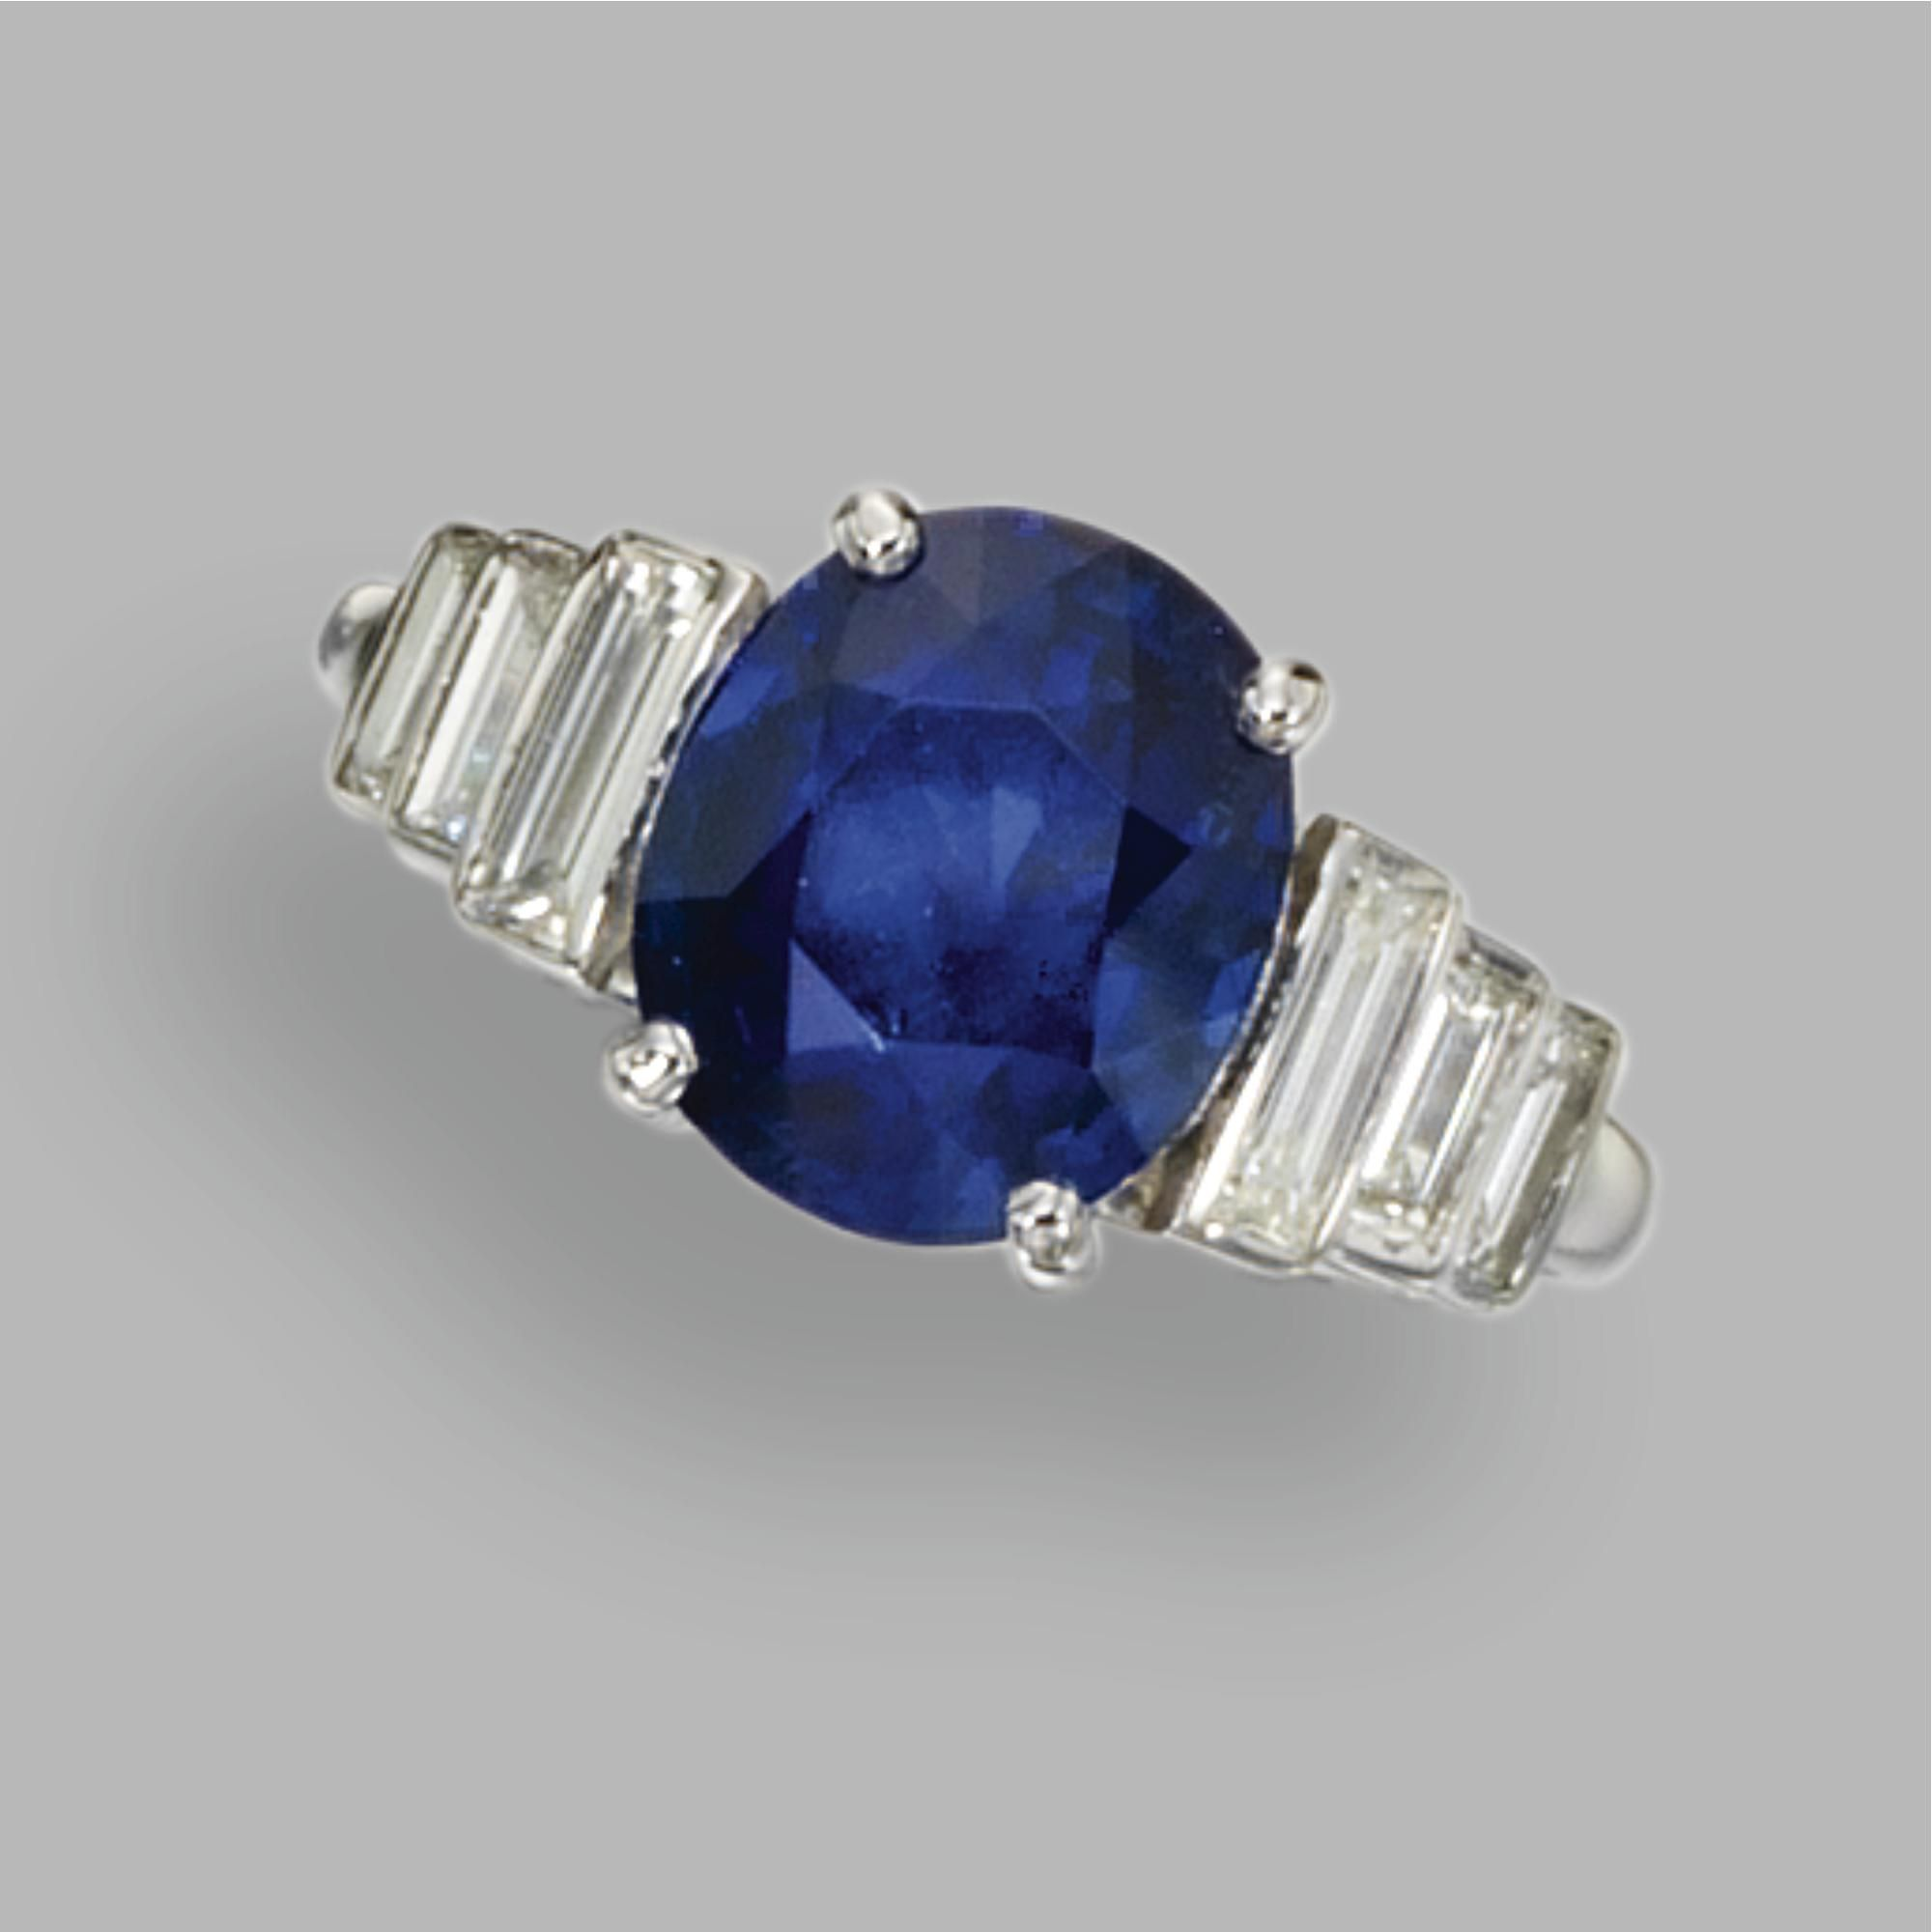 baguette pin stepped cabochon bulgari diamond and bordered trombino ring sapphire the by